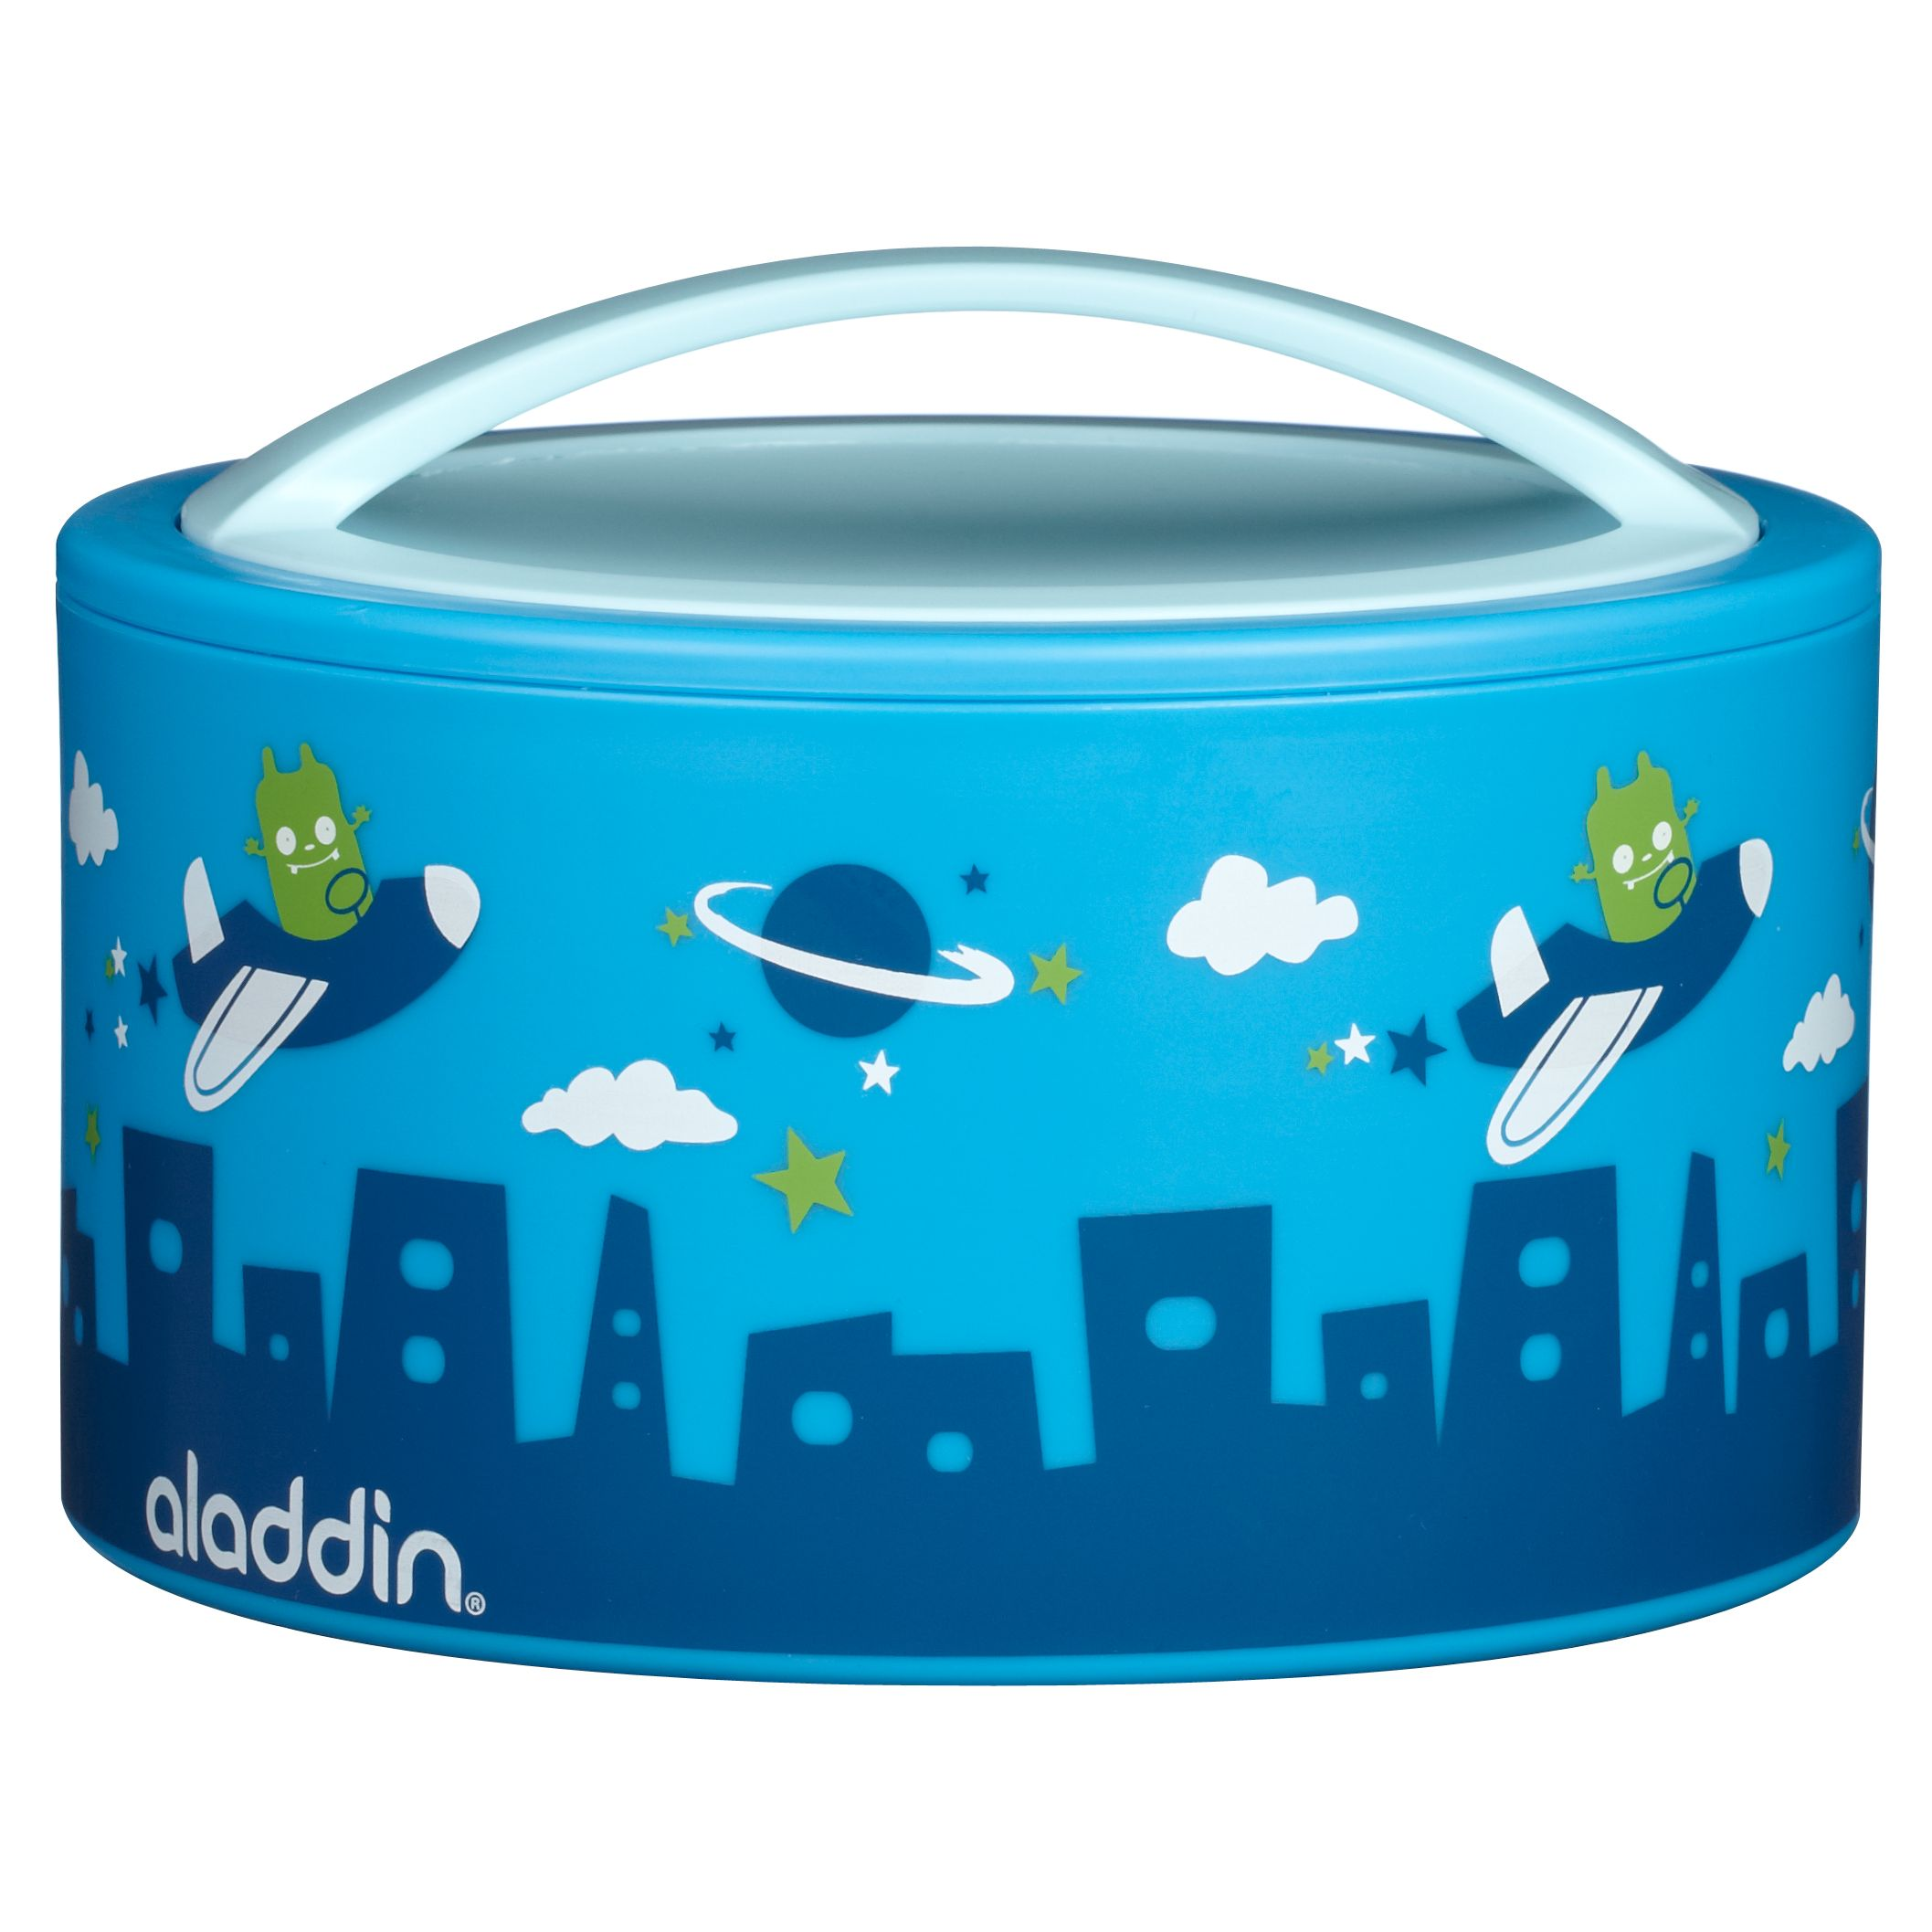 Aladdin Bento Kids Lunch Box, Blue